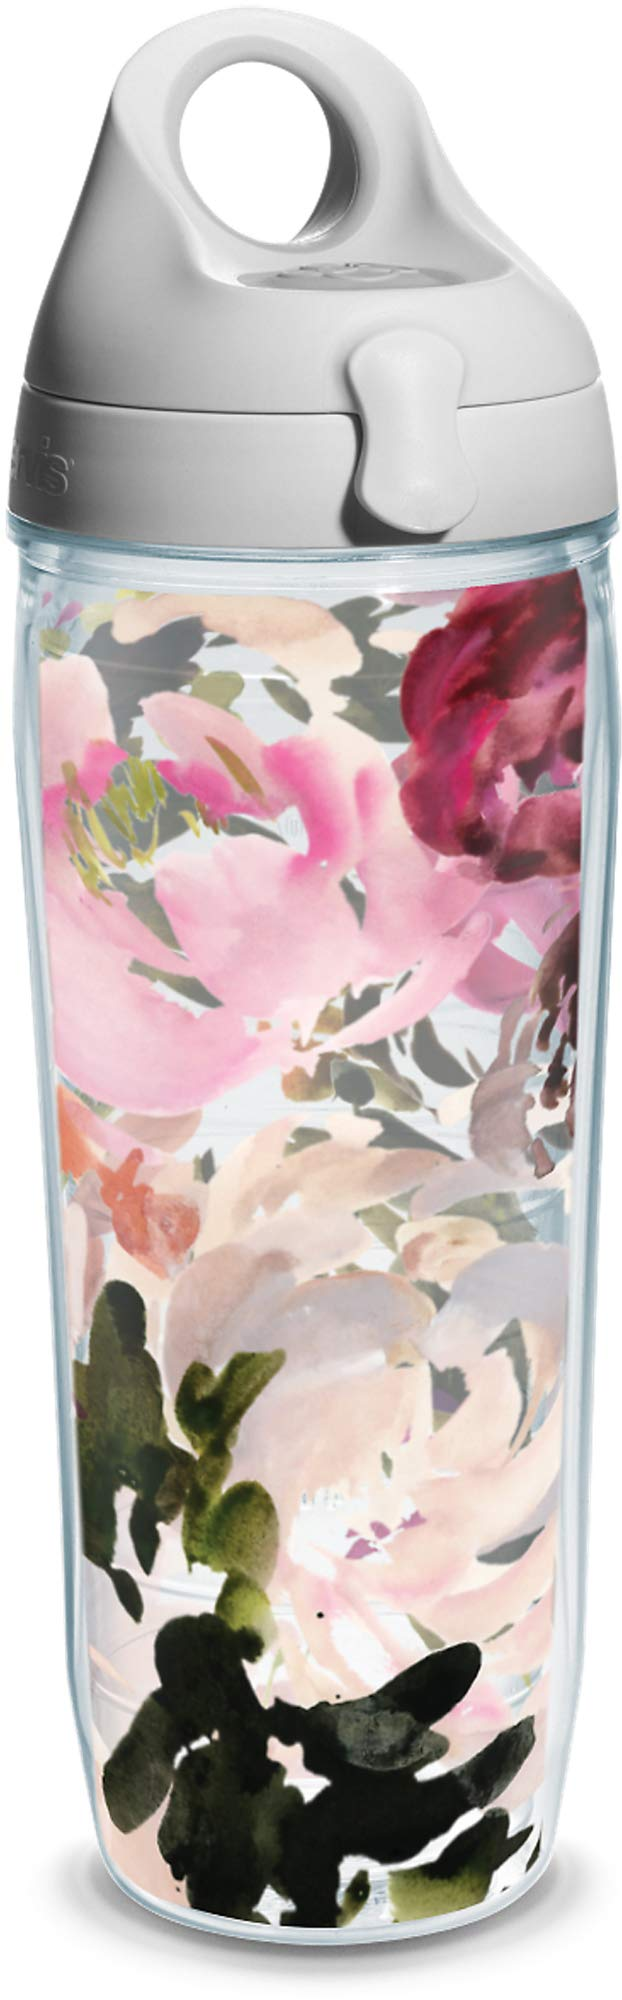 Tervis Kelly Ventura - Posy Insulated Tumbler with Wrap and Gray Lid, 24oz Water Bottle, Clear